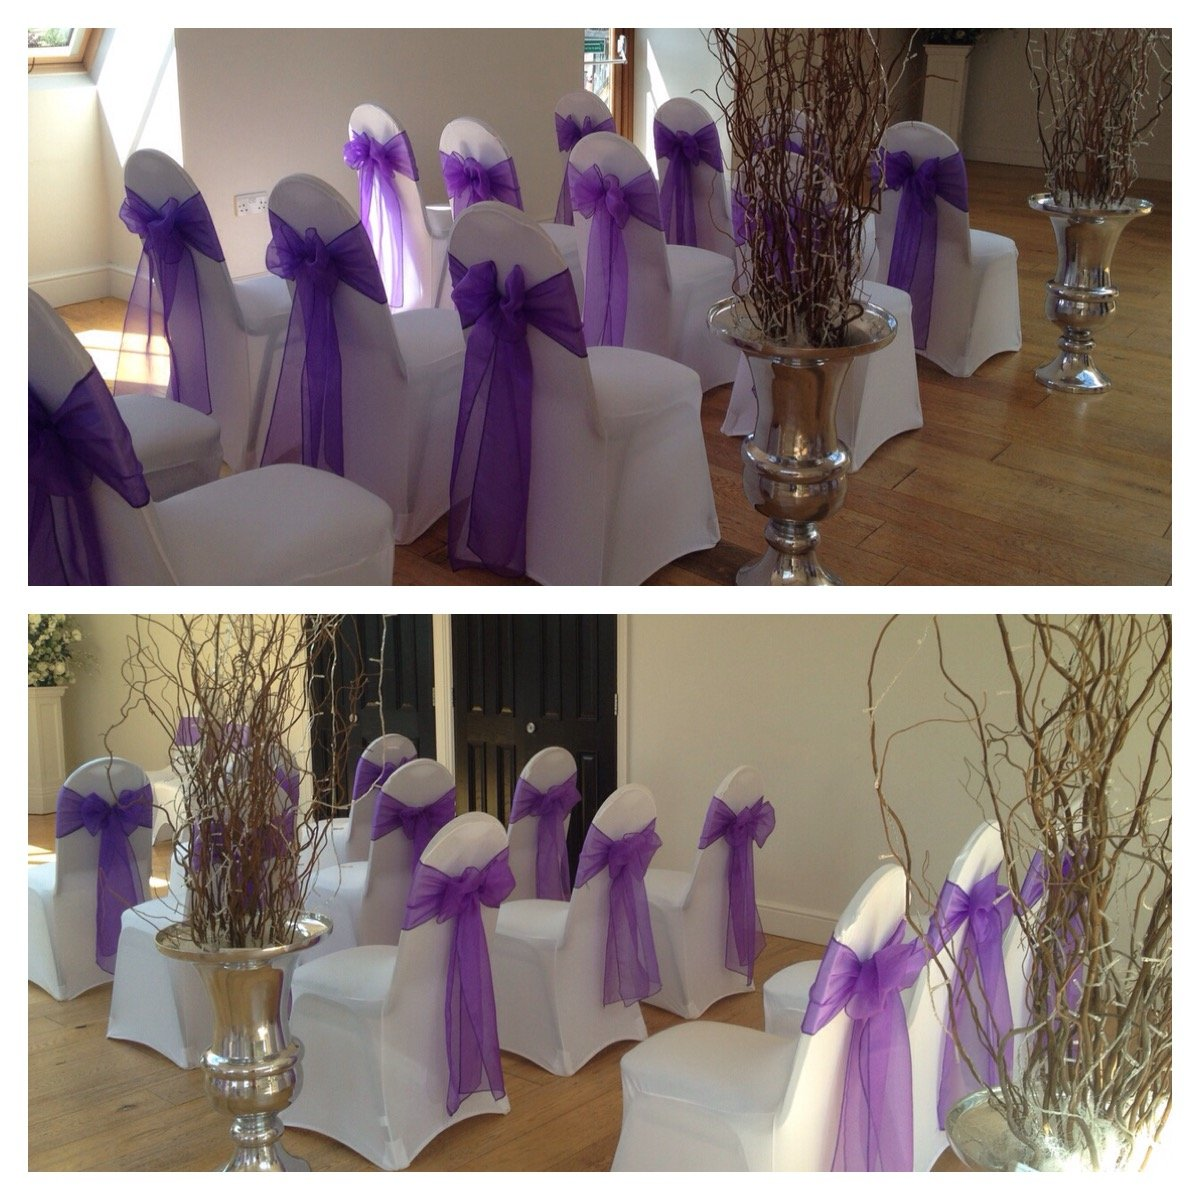 Purple organza sashes with white lycra chair covers at The Rayleigh Club